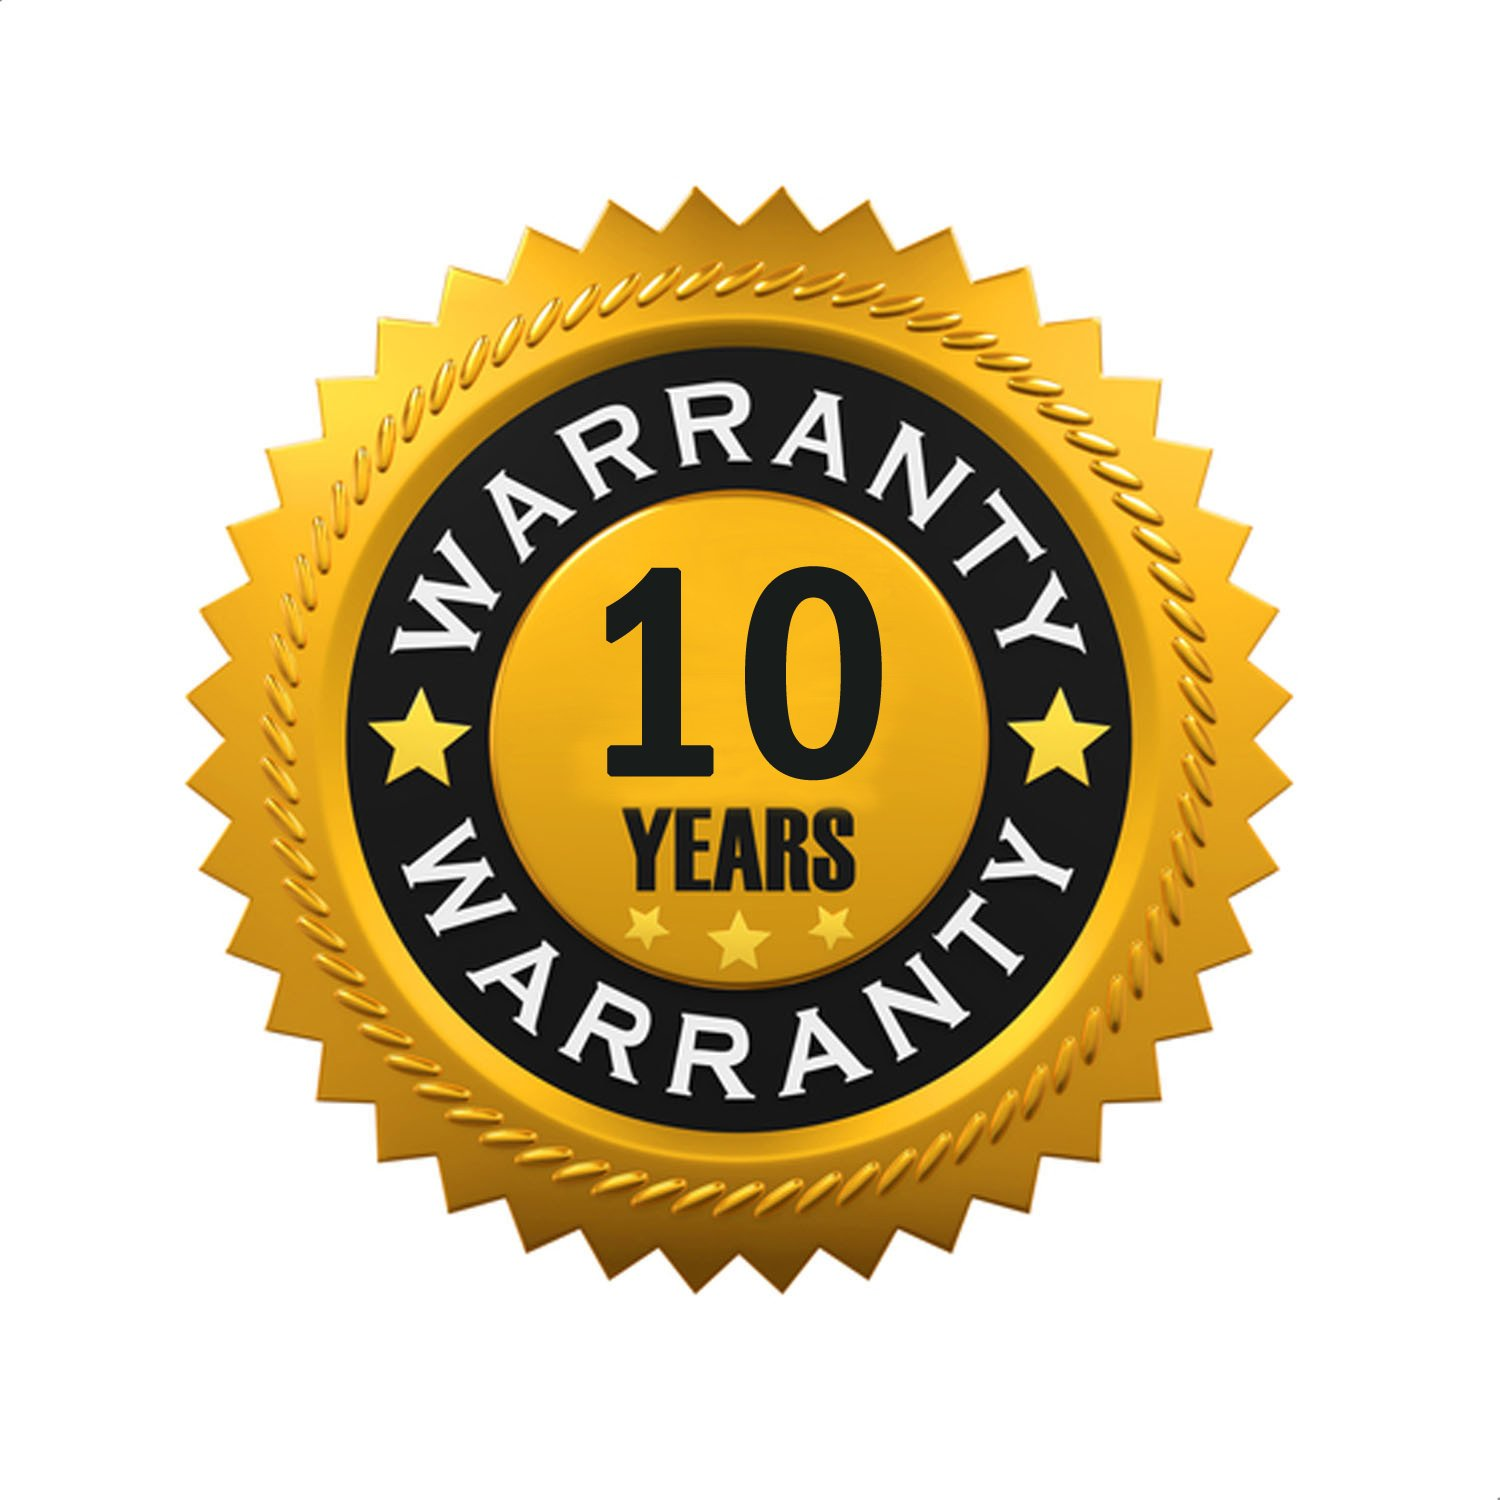 whirlpools-2-year-warranty.jpg